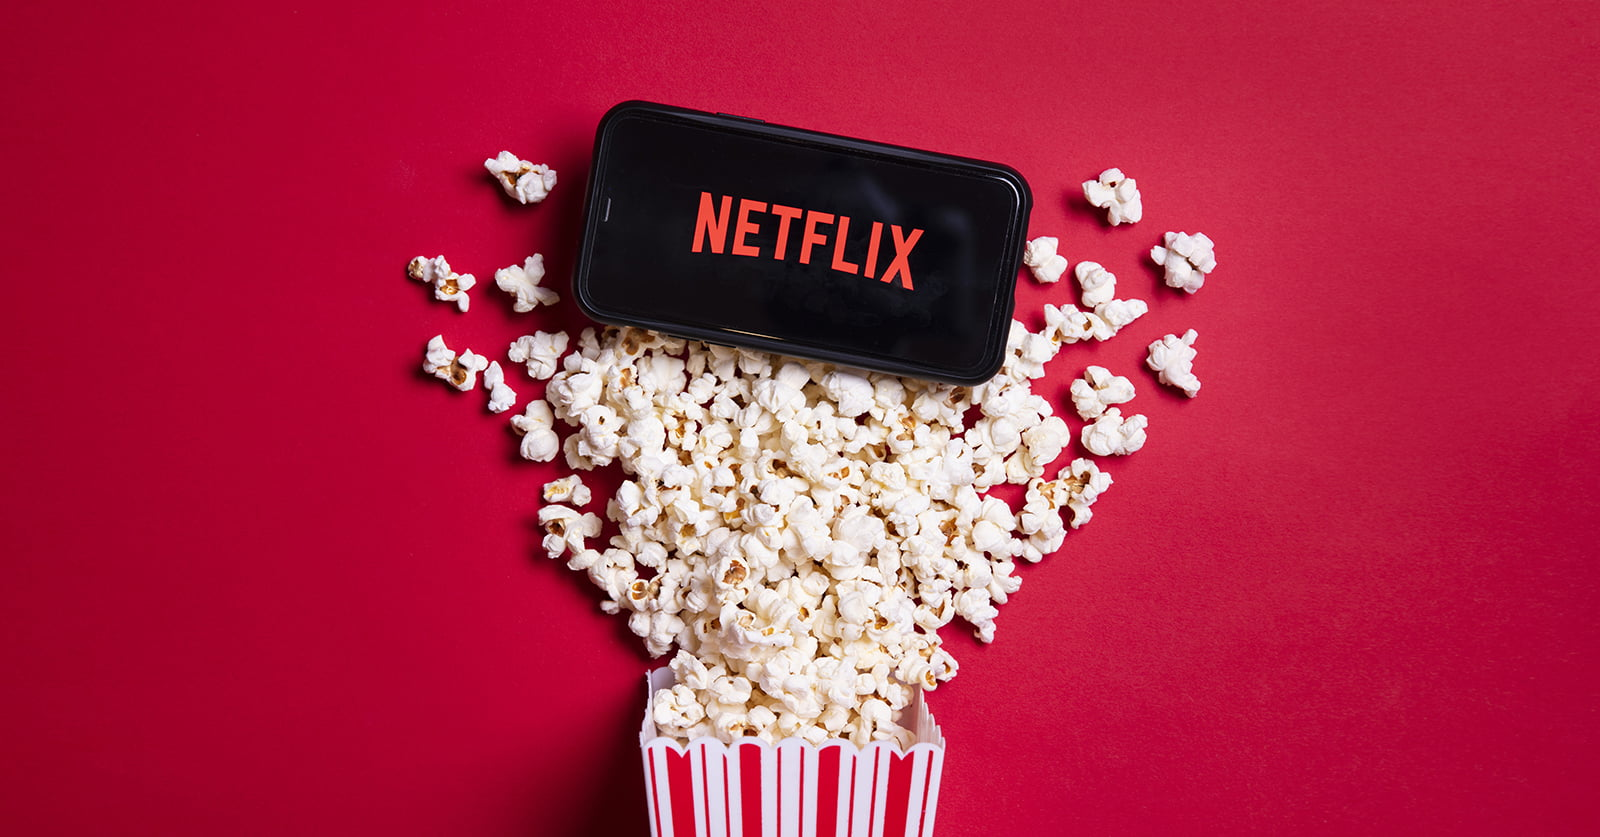 Streaming this Season: 9 films to watch on Netflix